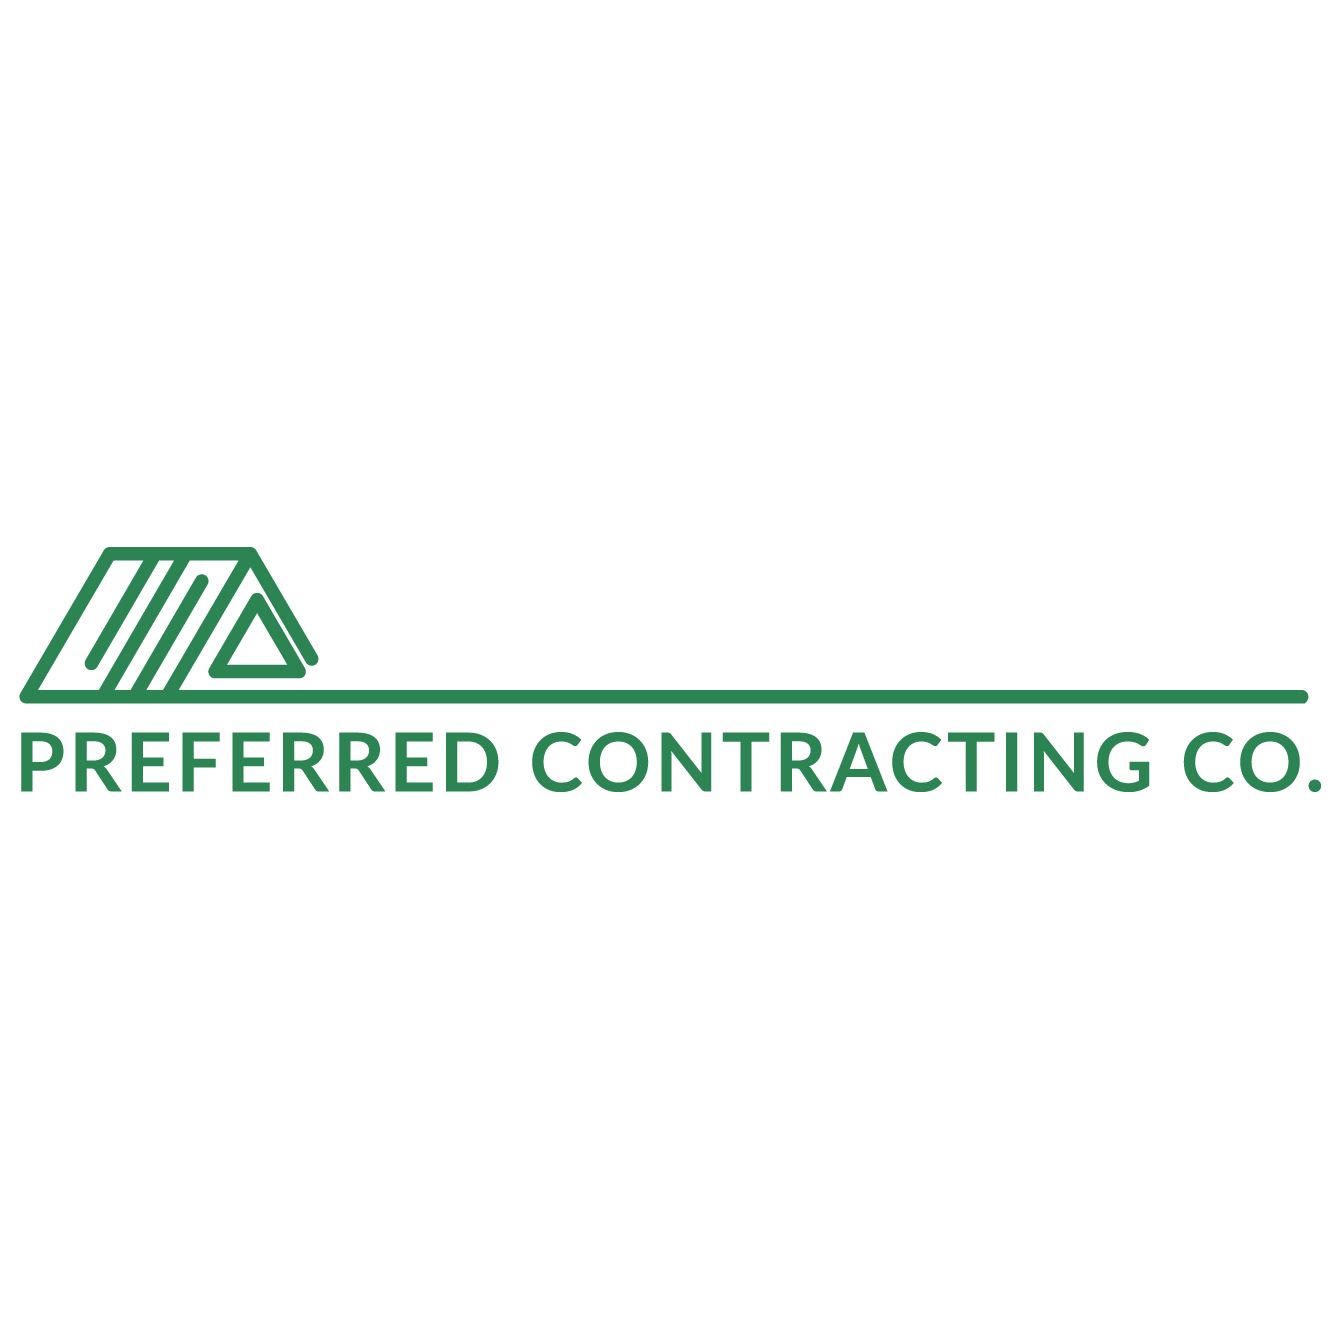 Preferred Contracting Co.